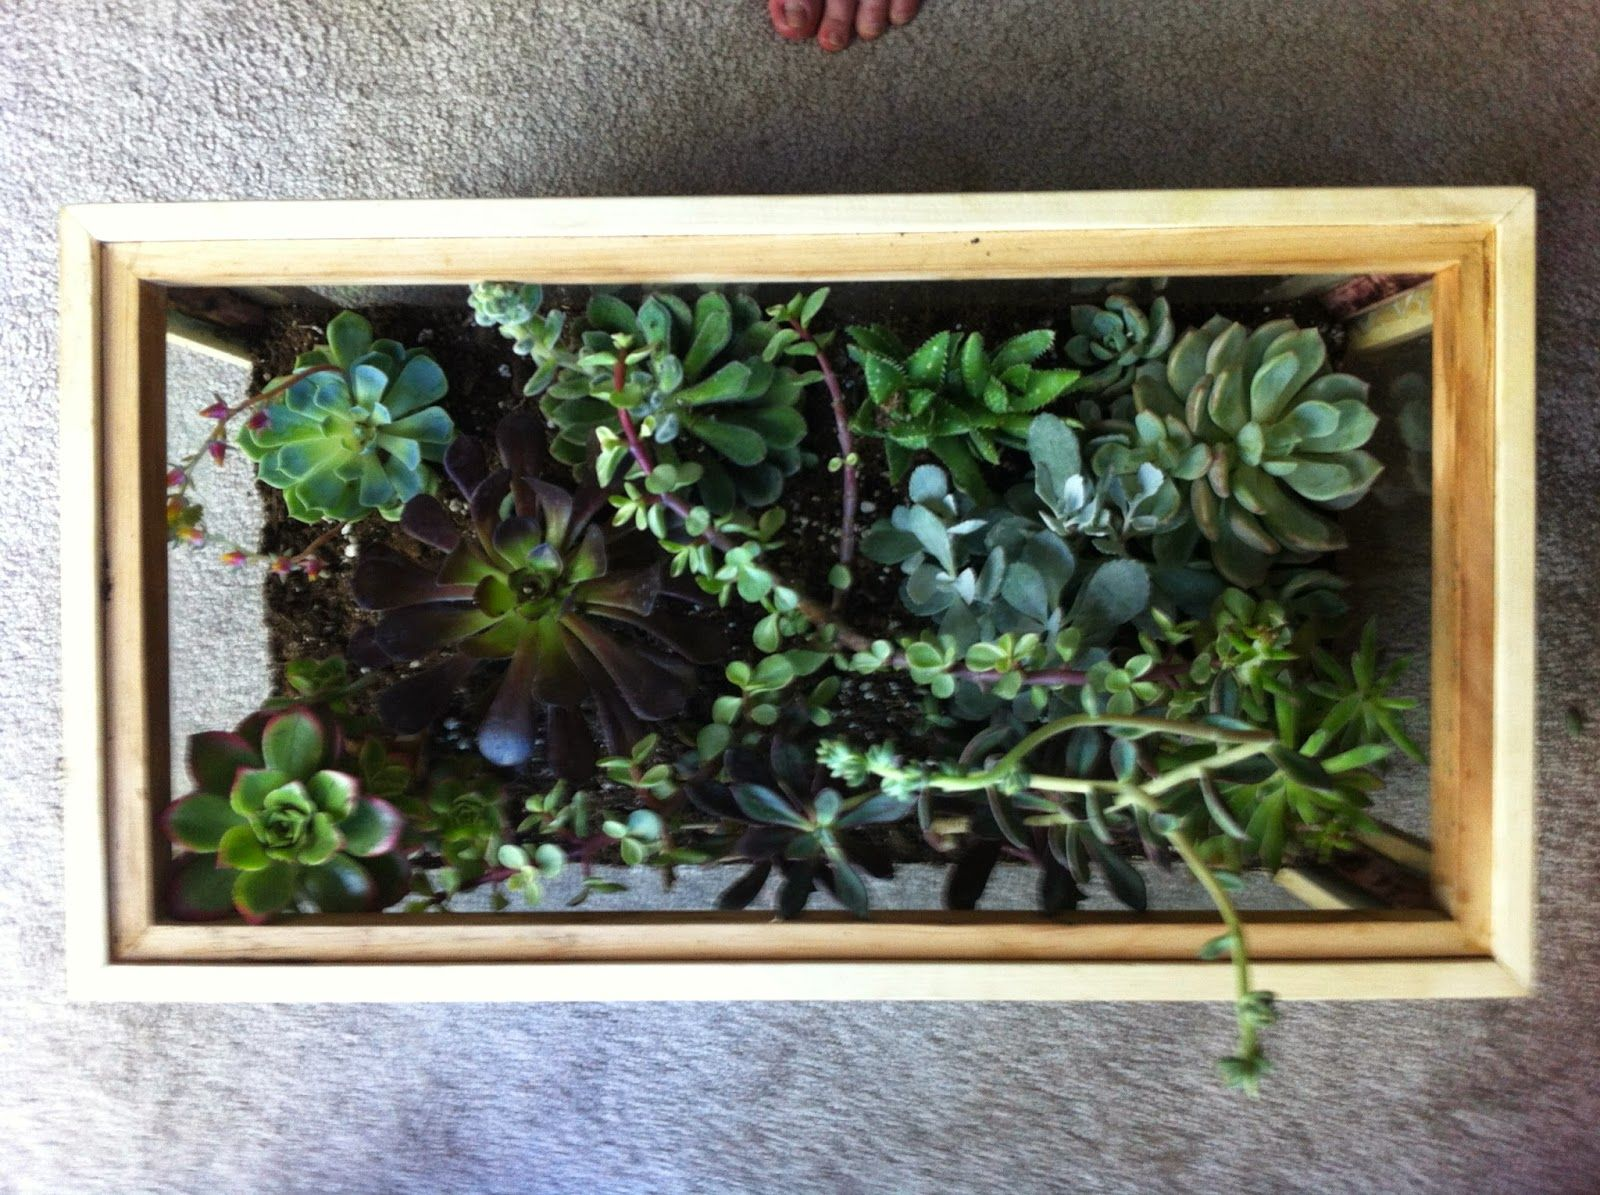 Leaning into green from aquarium to terrarium other plants